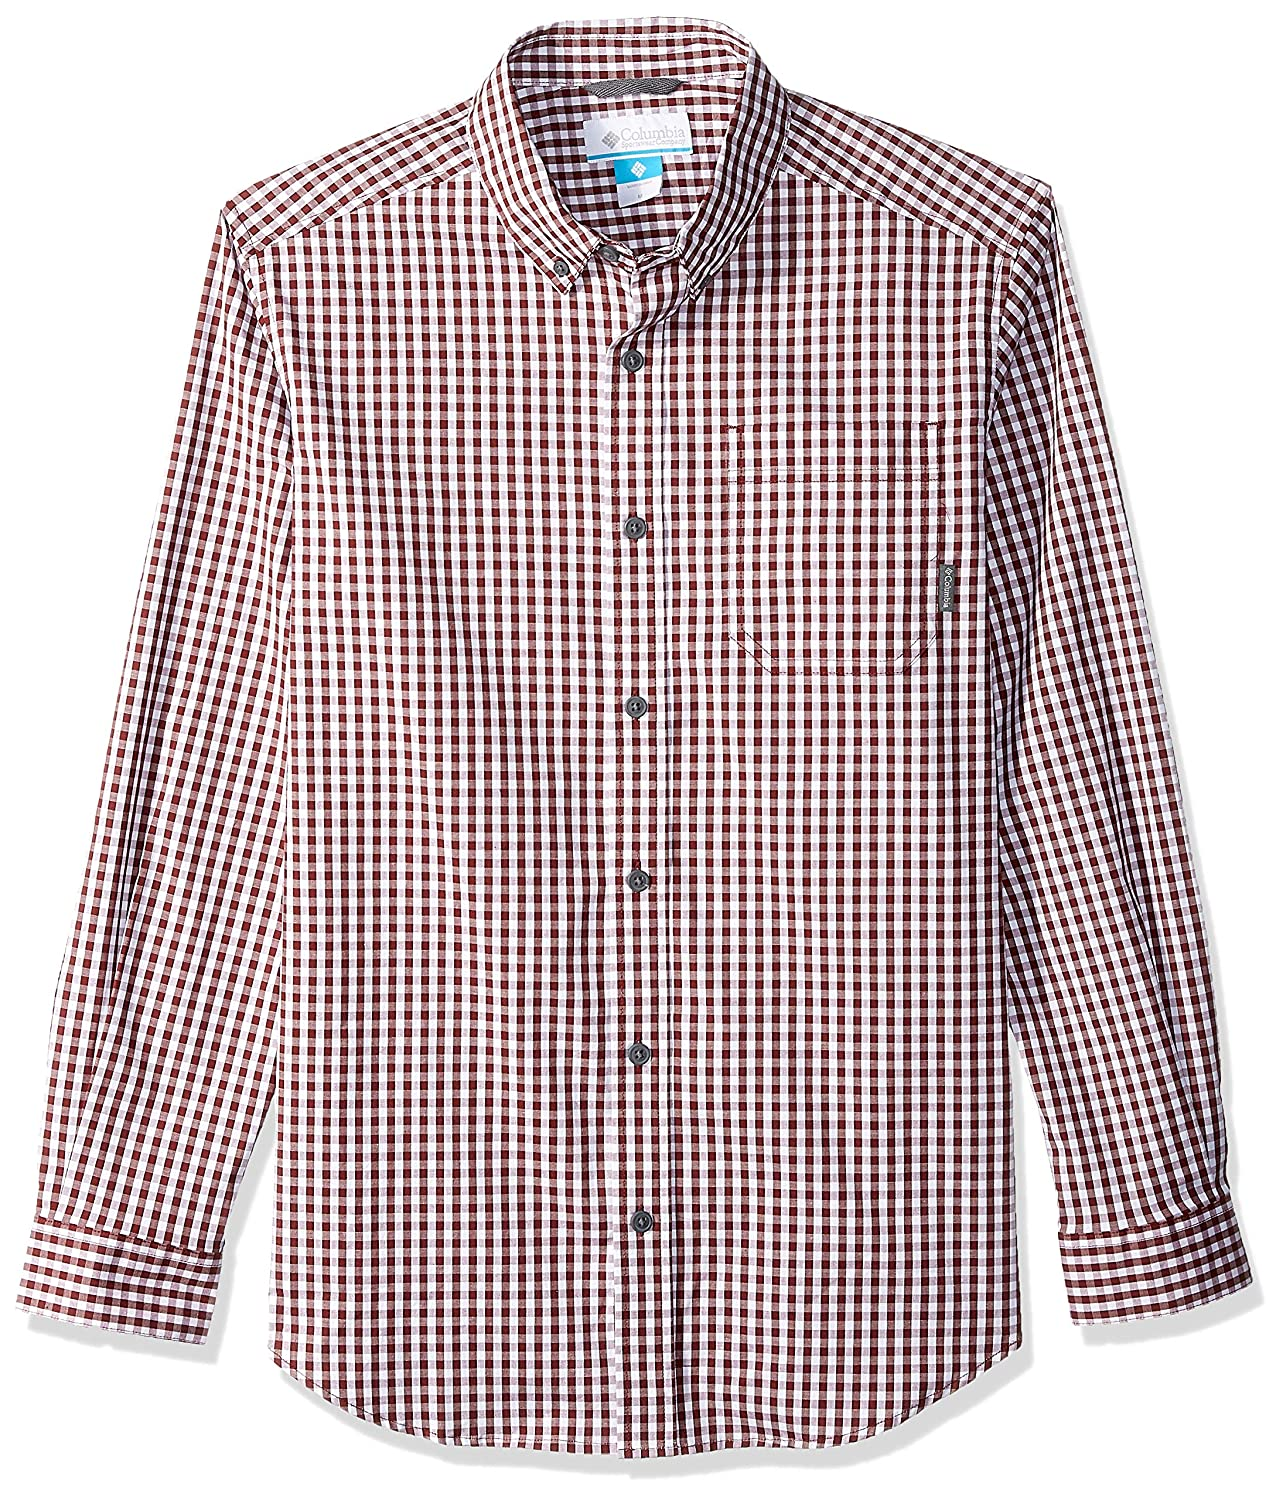 Tapestry Gingham M Columbia Homme 1552054 Manches Longues Chemisier